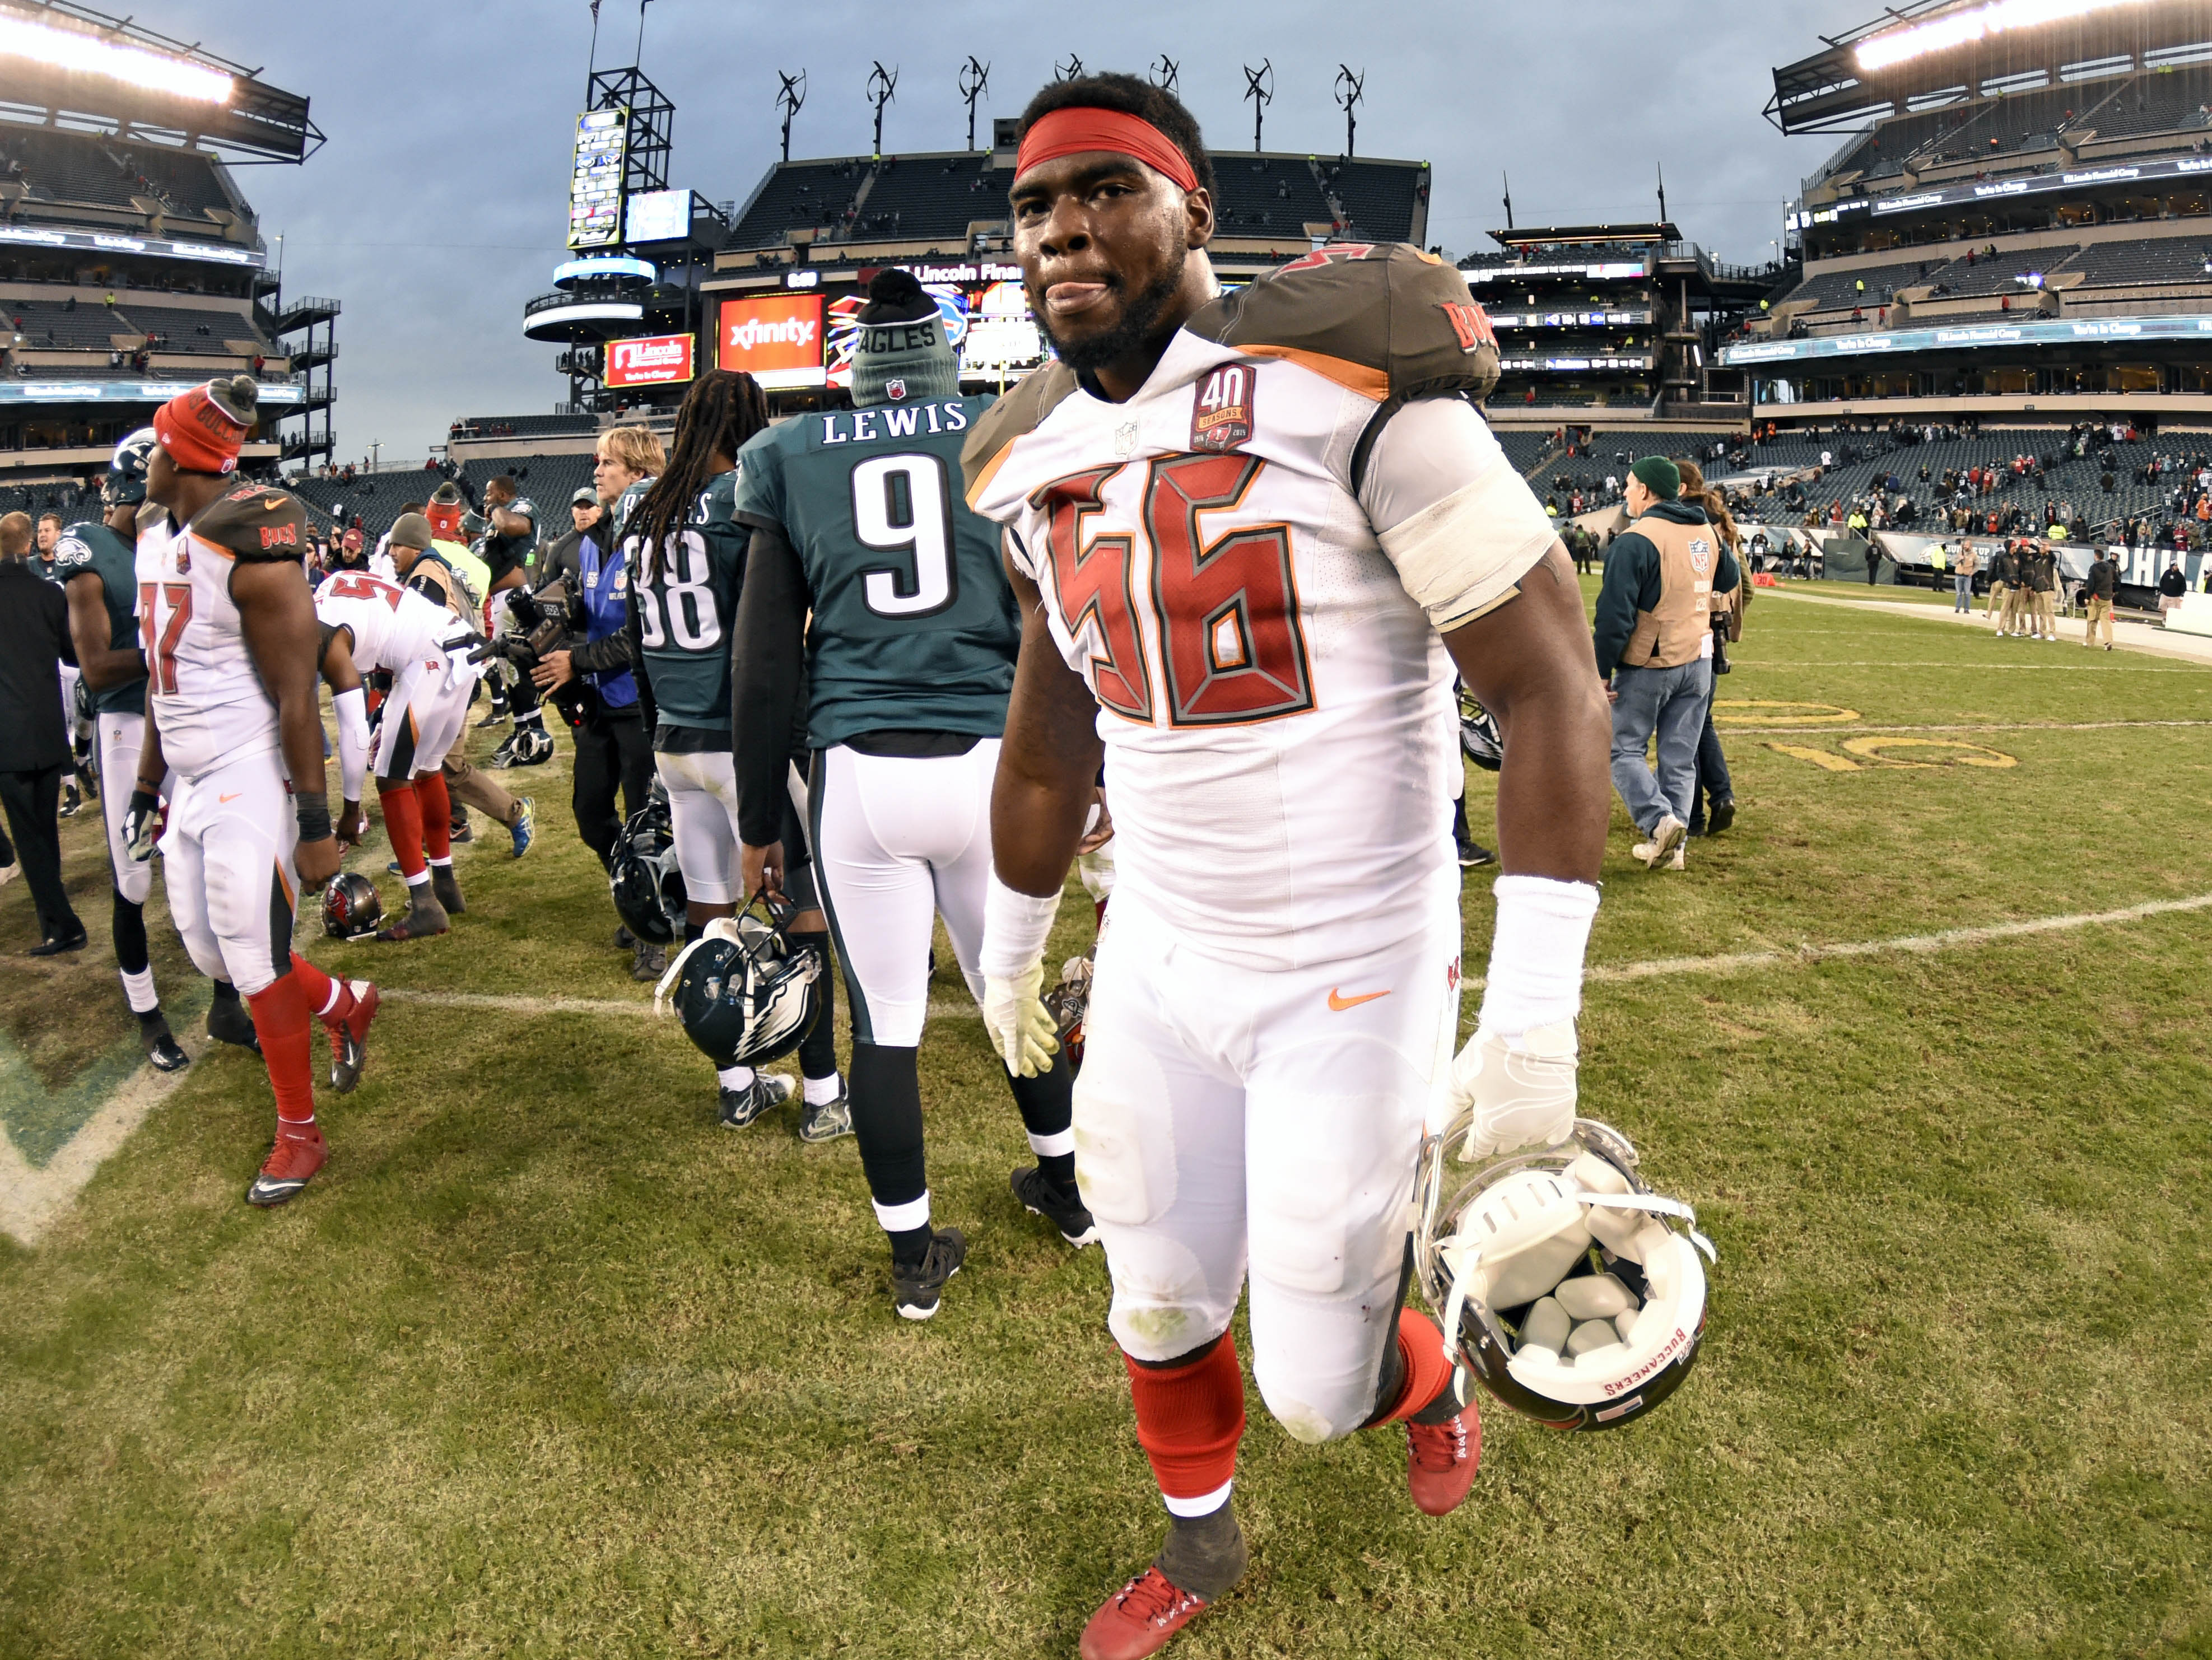 8945170-nfl-tampa-bay-buccaneers-at-philadelphia-eagles